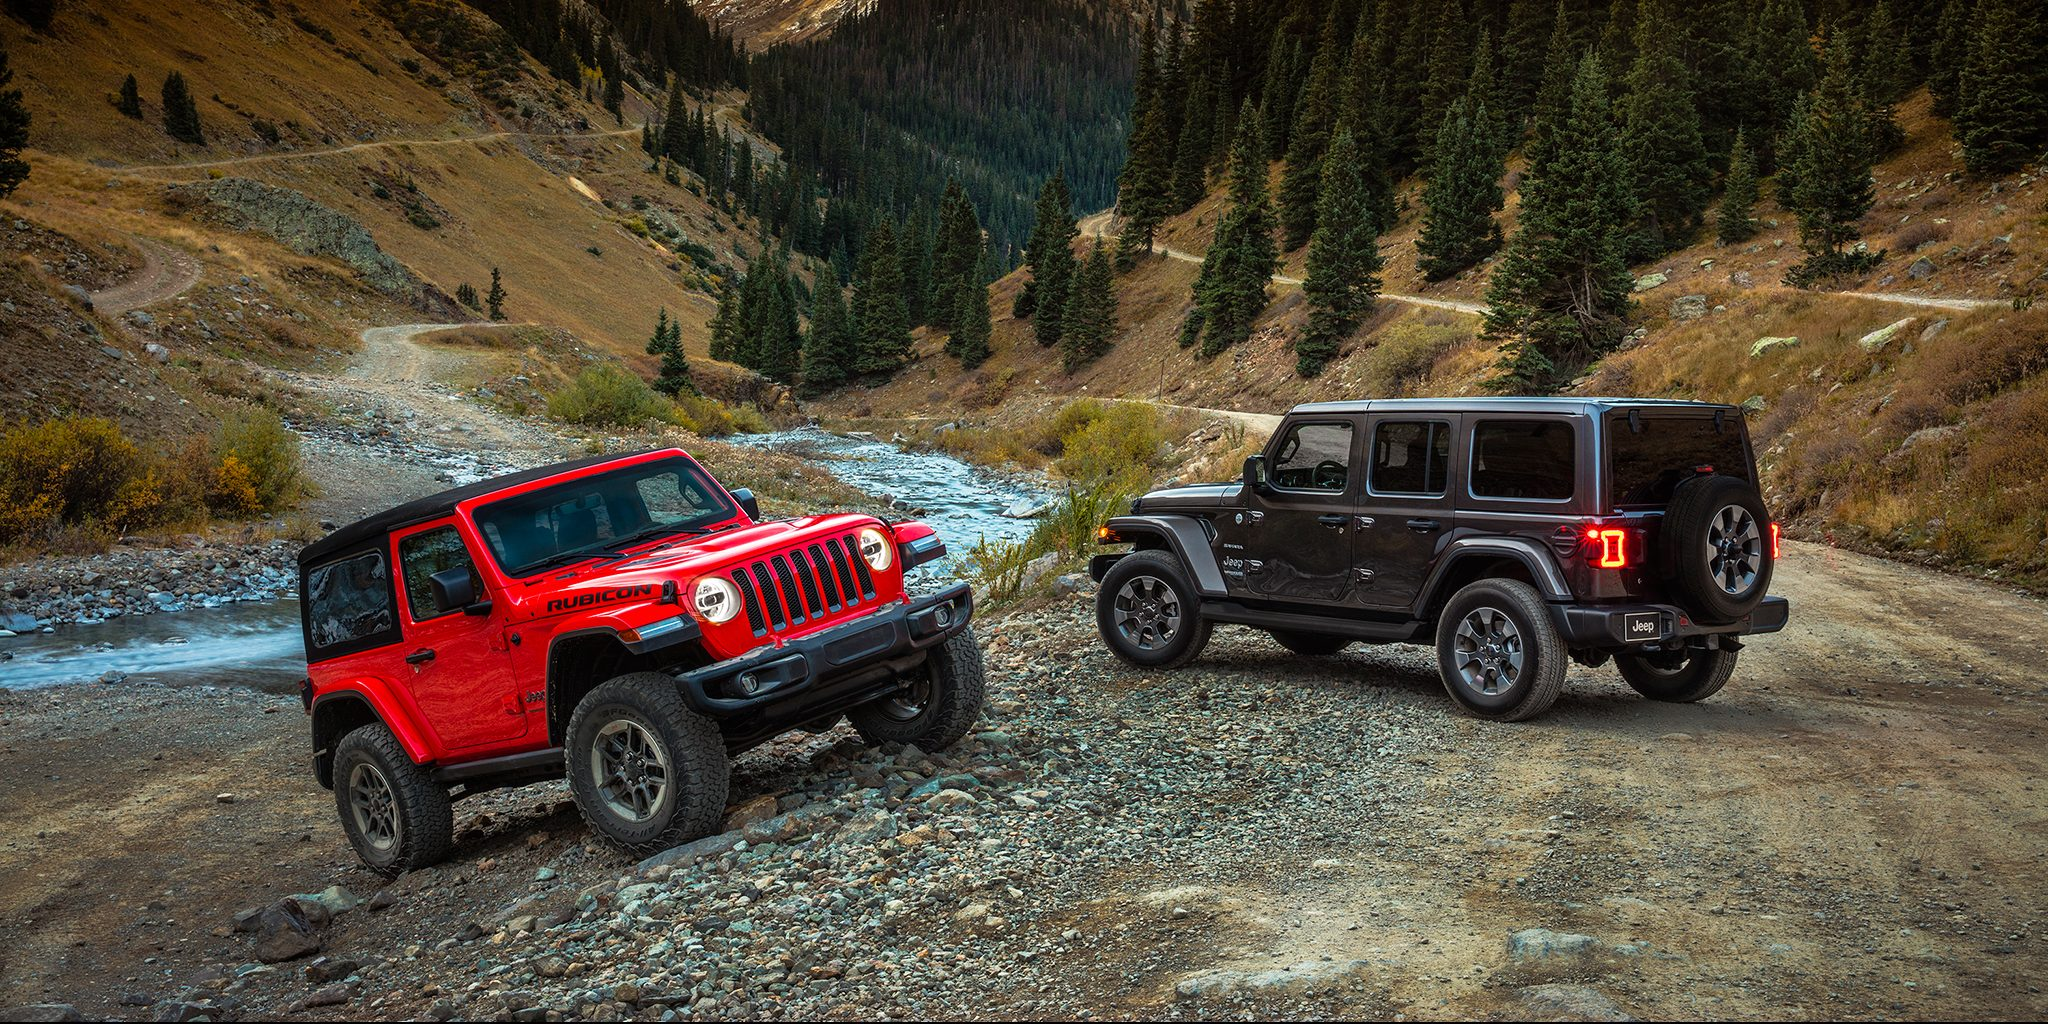 Jeep Will Make An Electric Wrangler In 2020